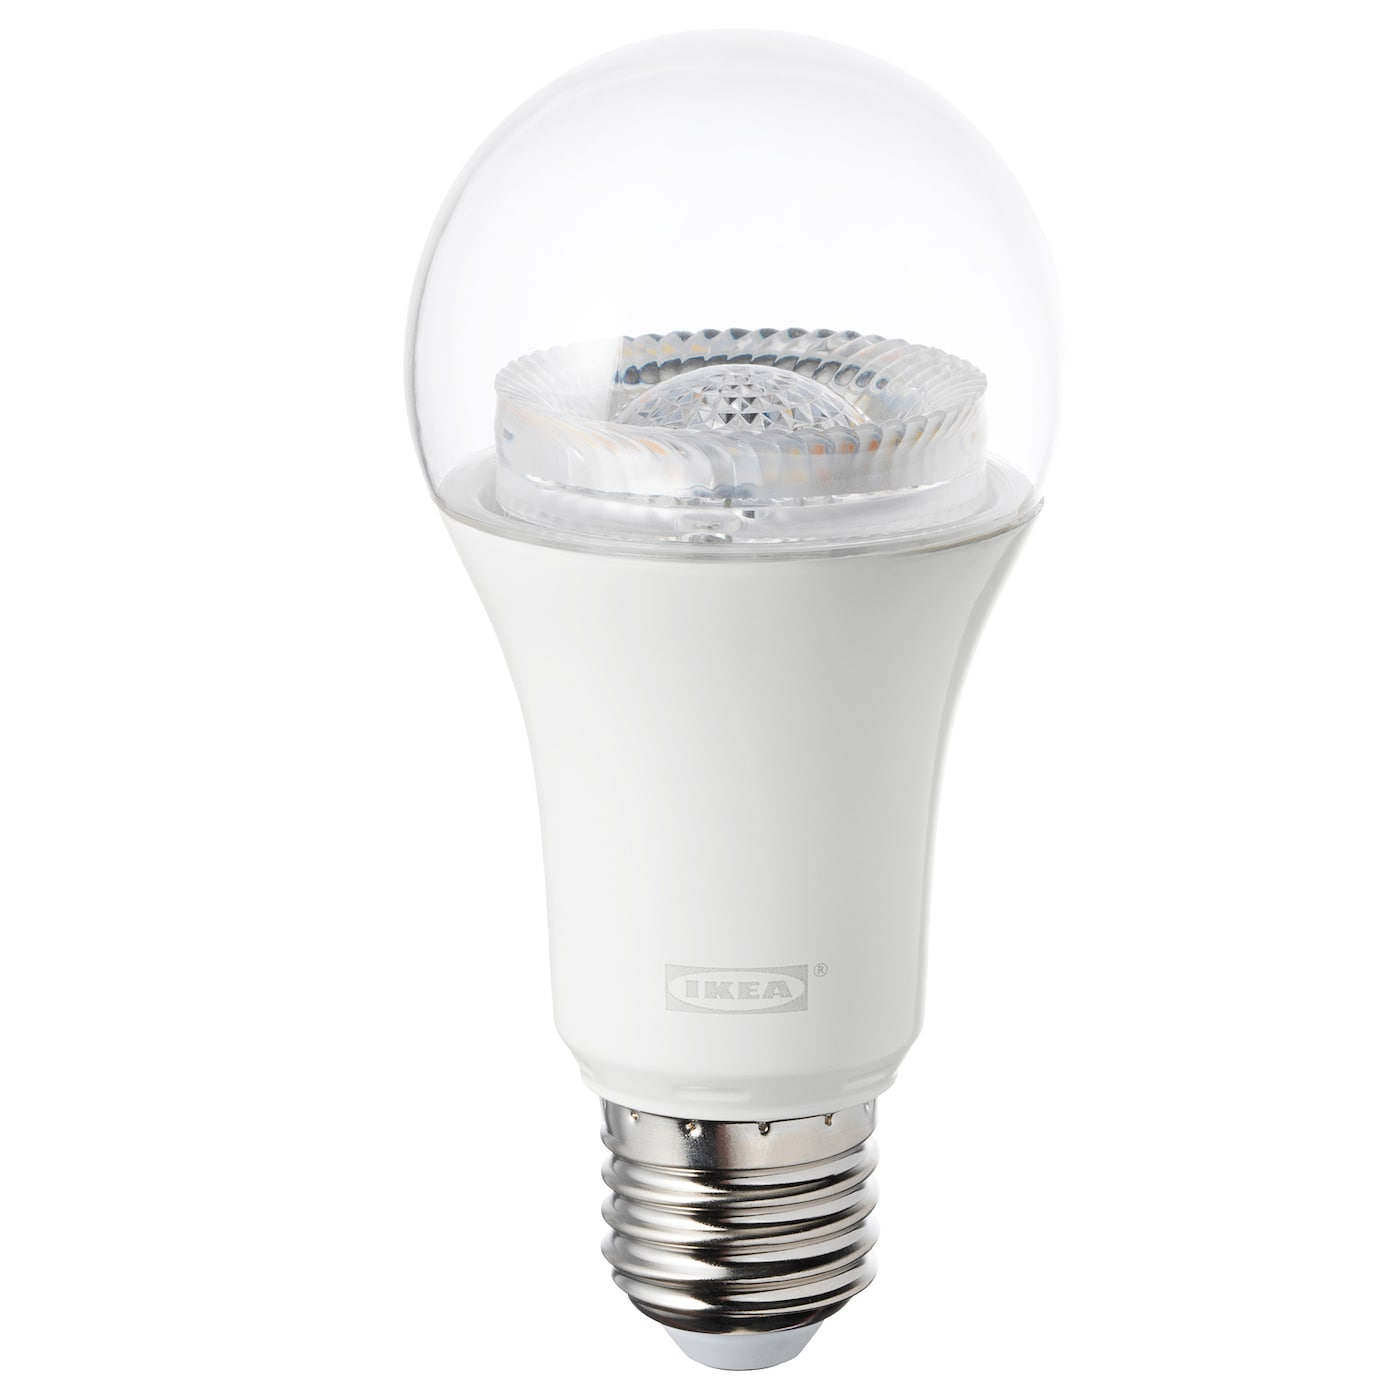 Smart Lighting Wireless Remote Control Ikea Products Metal Related Searchesclapper Switch Clap Light Trdfri Led Bulb E27 950 Lumen